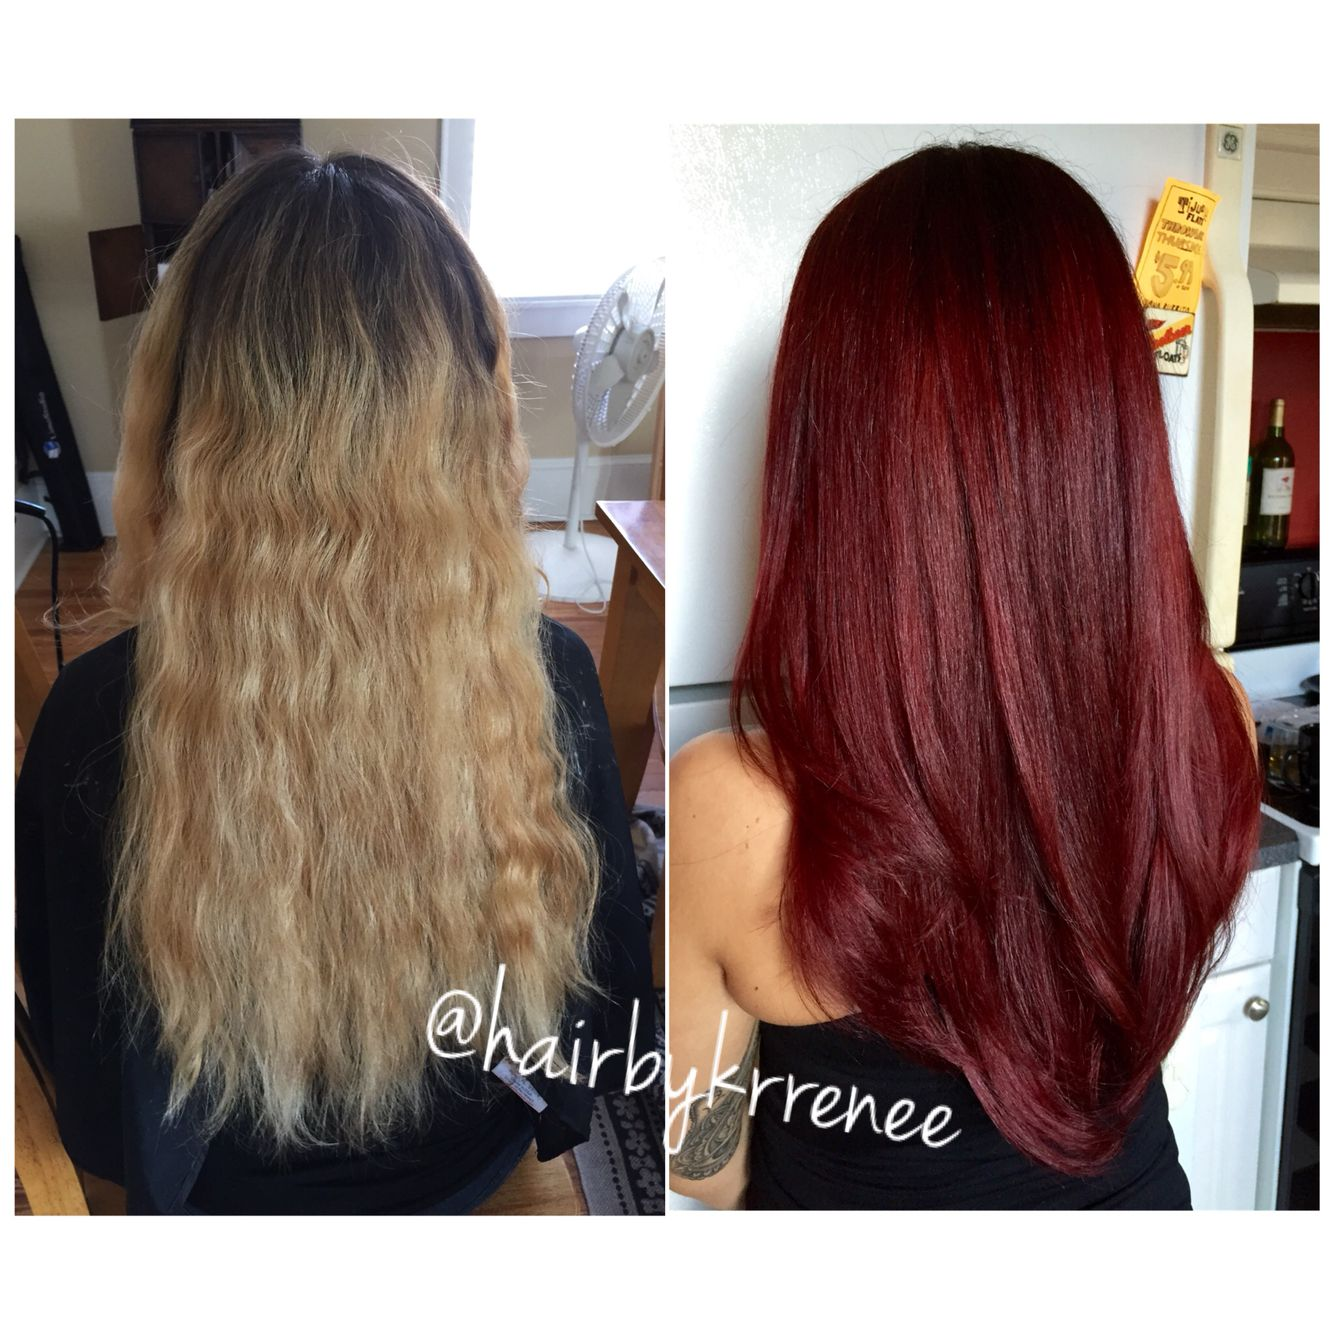 Before And After Blonde To Dark Red Hair For Fall Such A